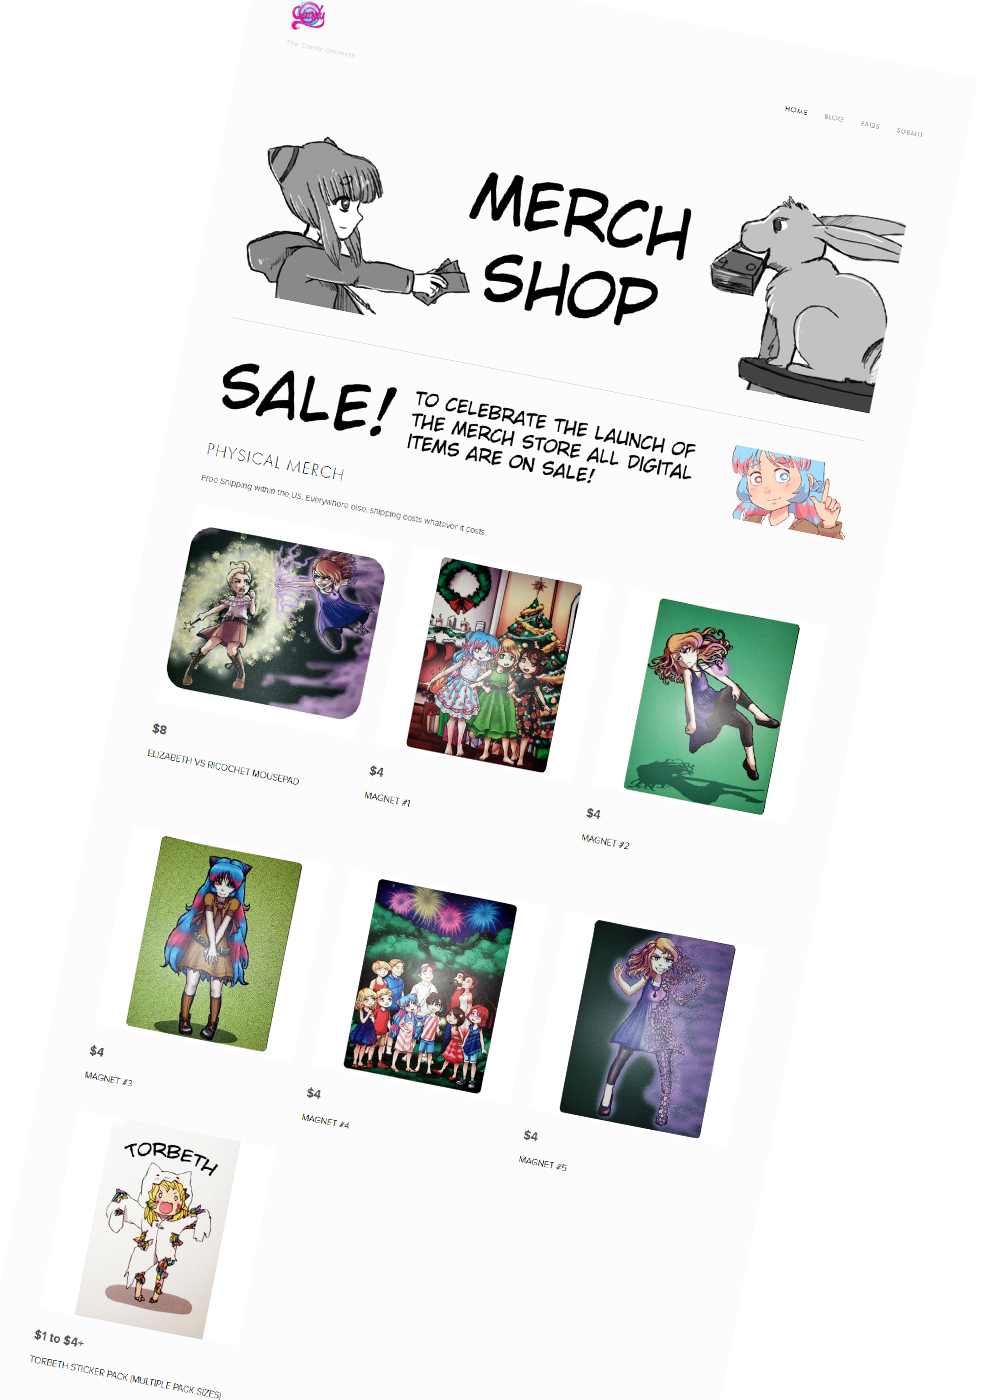 There's digital merch too!